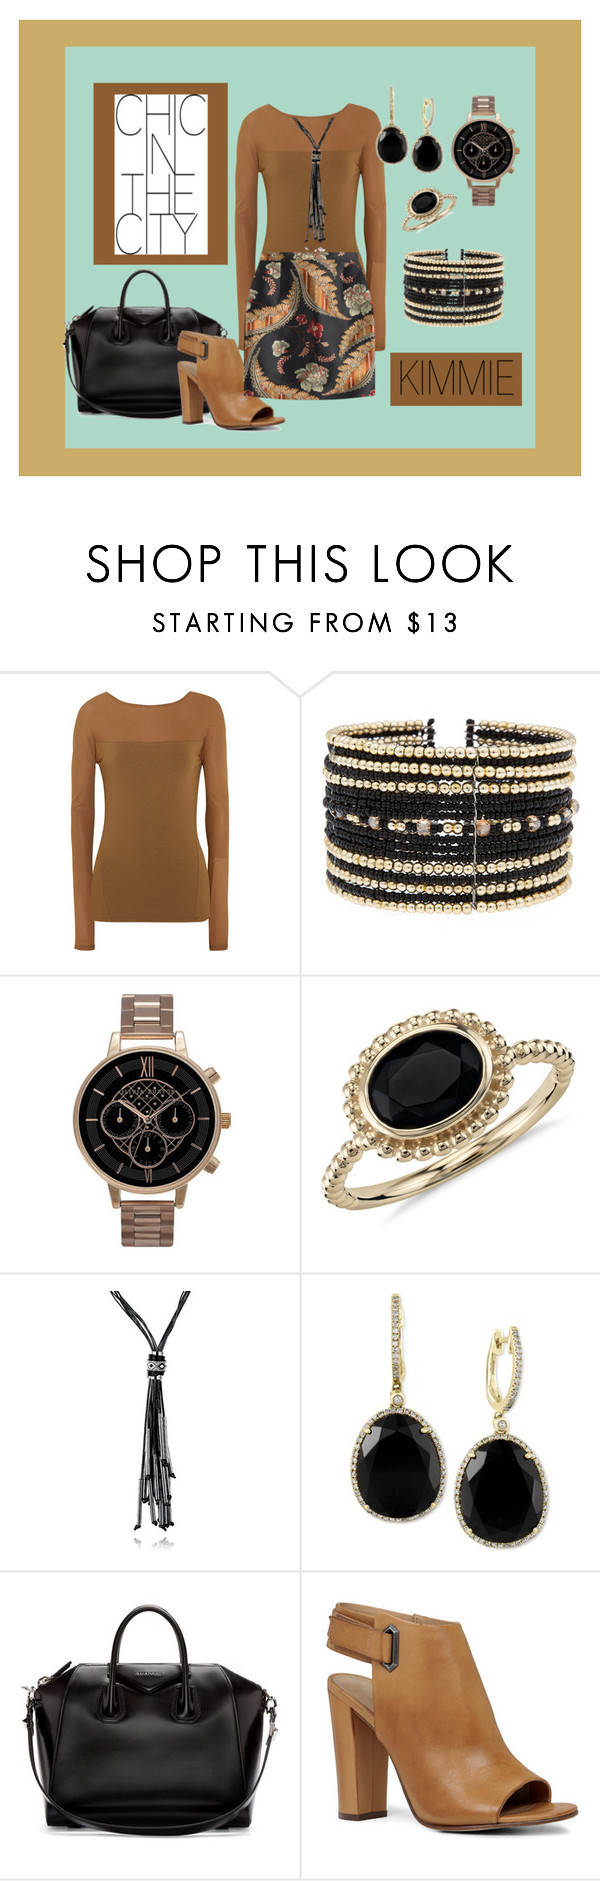 """Chic In The City"" by cozyk on Polyvore featuring Donna Karan, Eloquii, Olivia Burton, Blue Nile, Effy Jewelry, Givenchy, ALDO and Dsquared2"